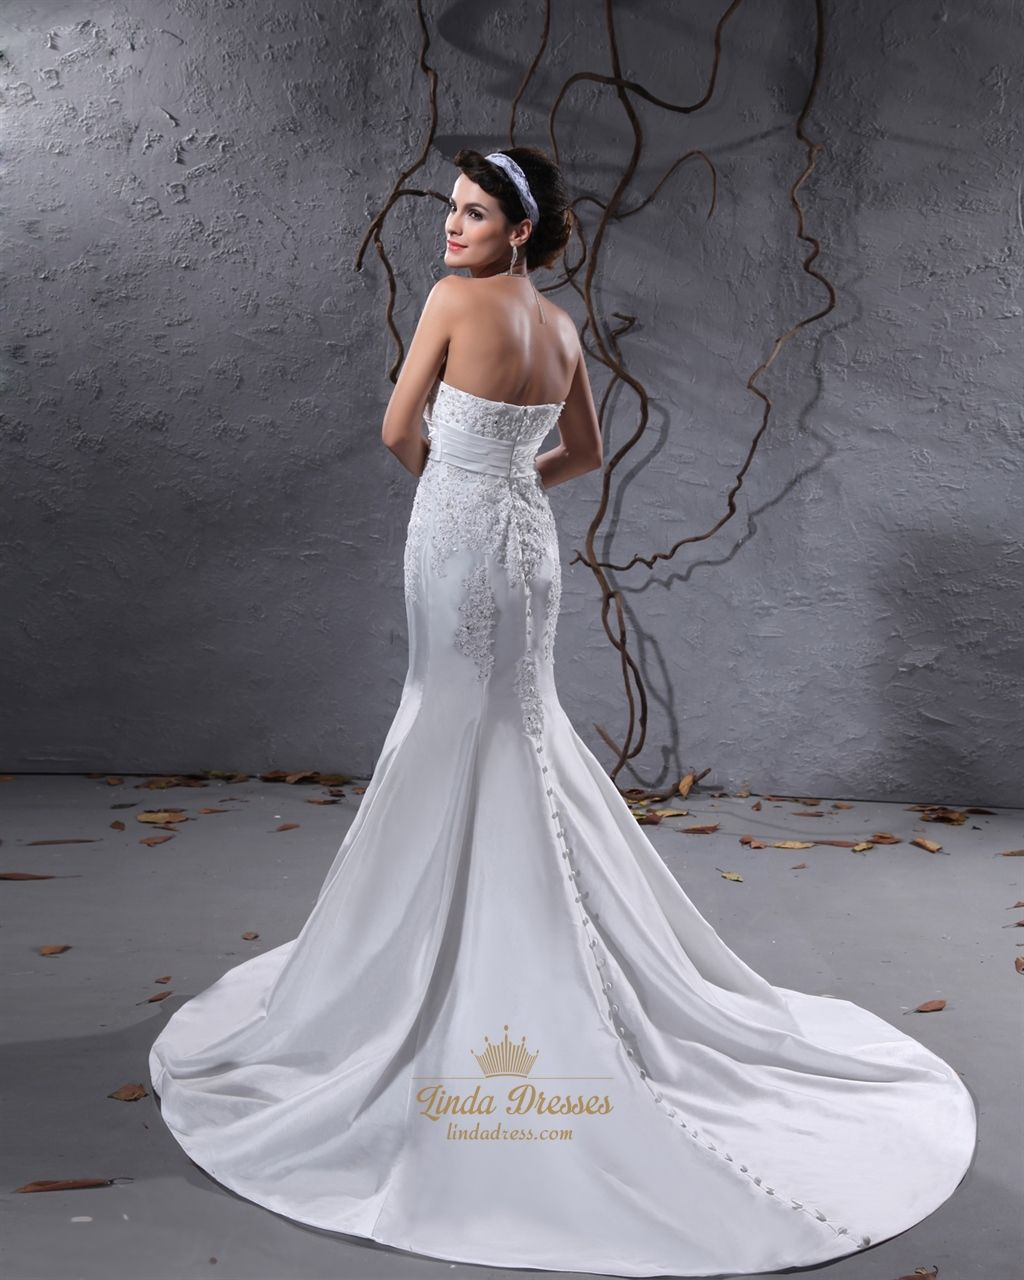 White Strapless Mermaid Wedding Dresses With Ons All Down Back